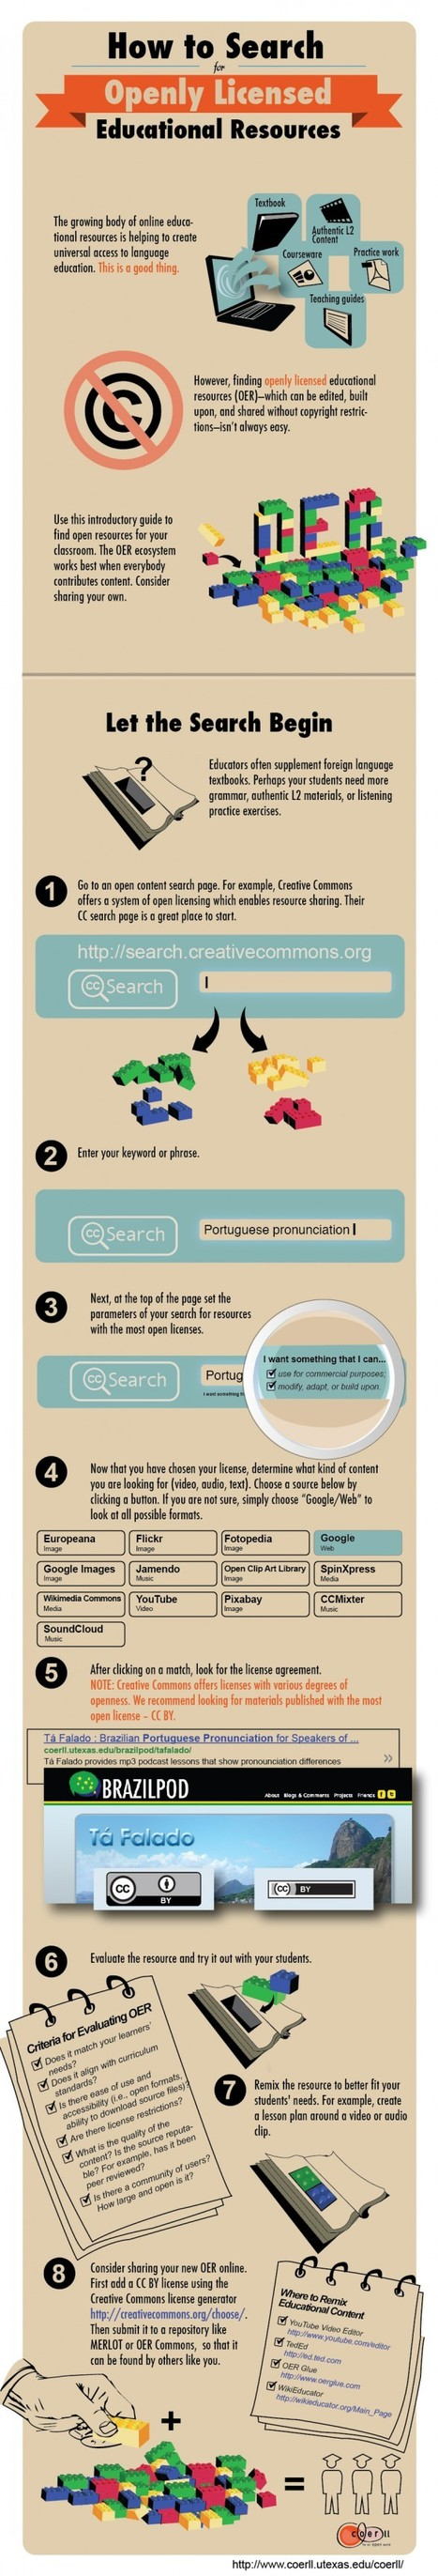 How To Find Openly Licensed Educational Resources You Can Use [Infographic] | EDUCACIÓN en Puerto TIC | Scoop.it